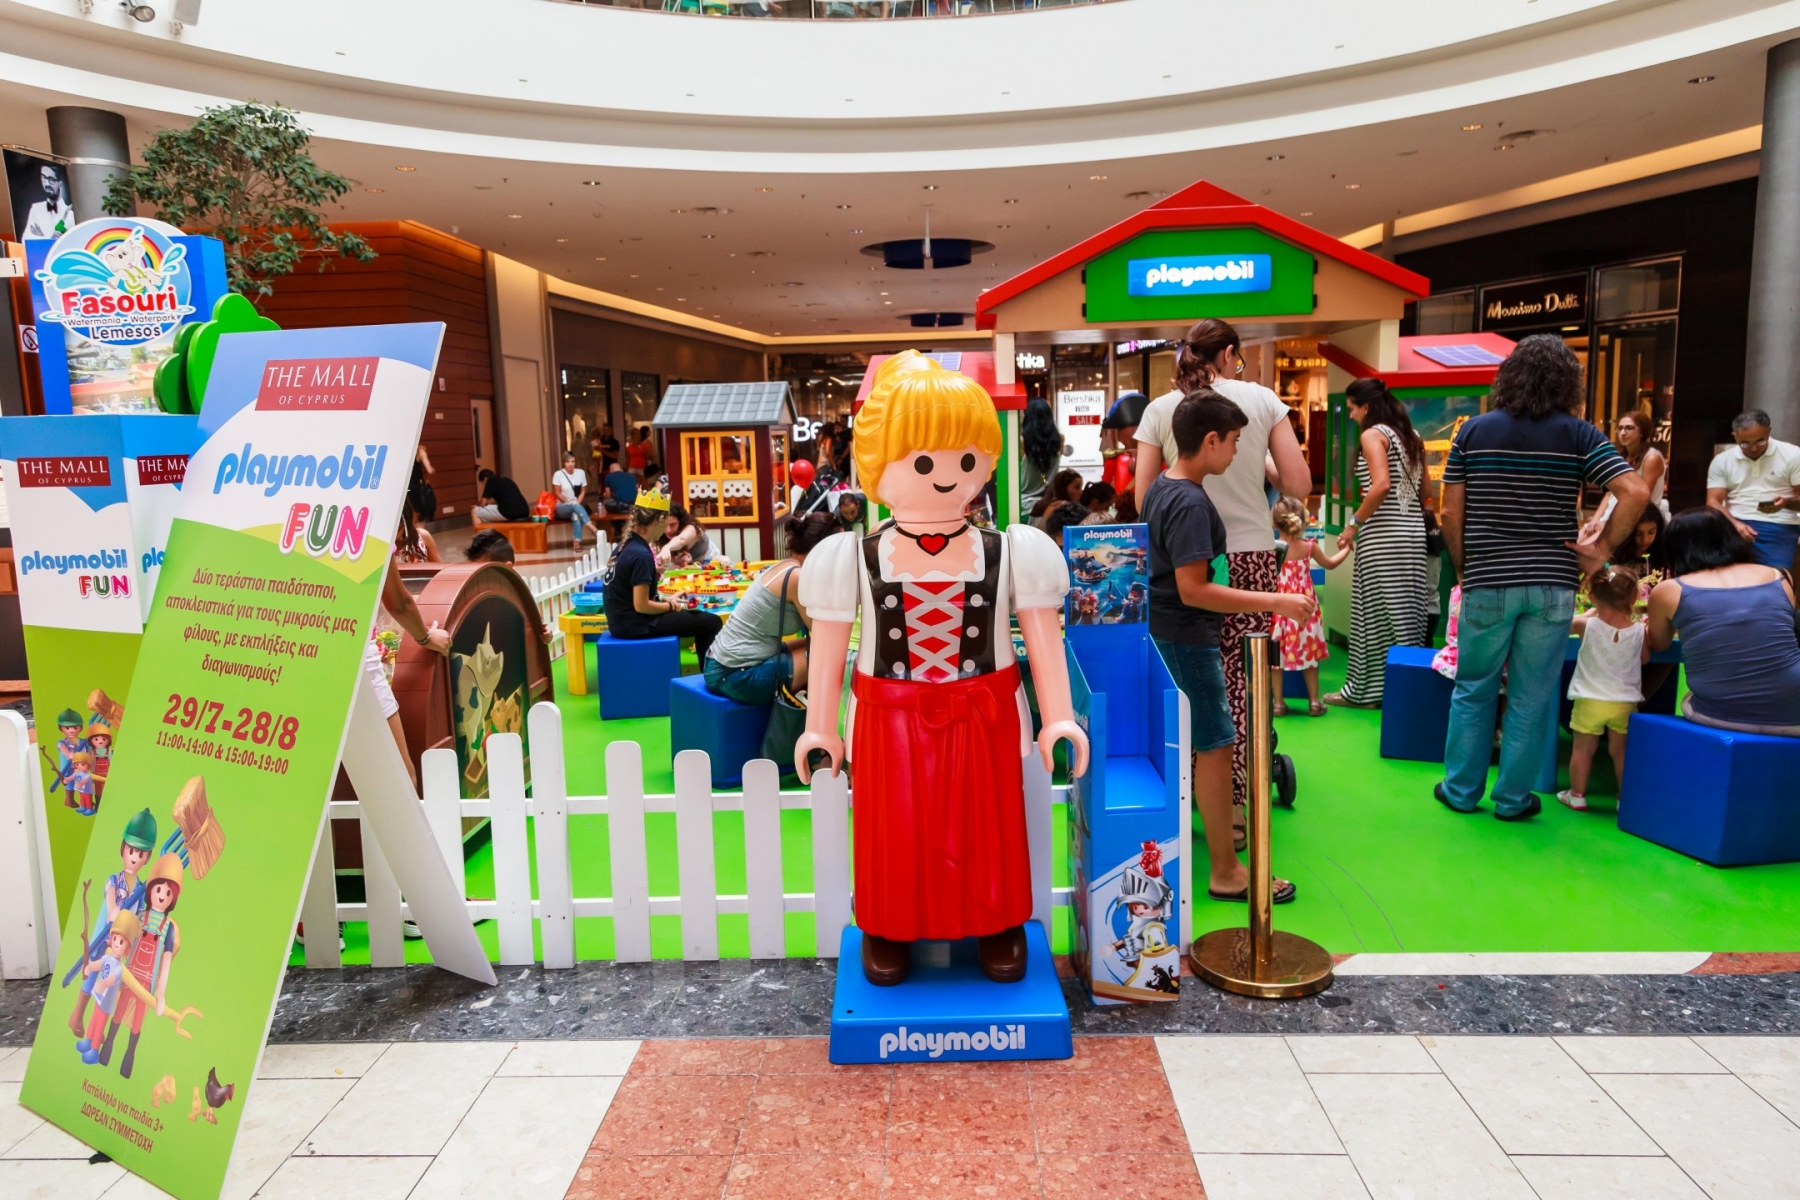 Playmobil Fun At The Mall Of Cyprus